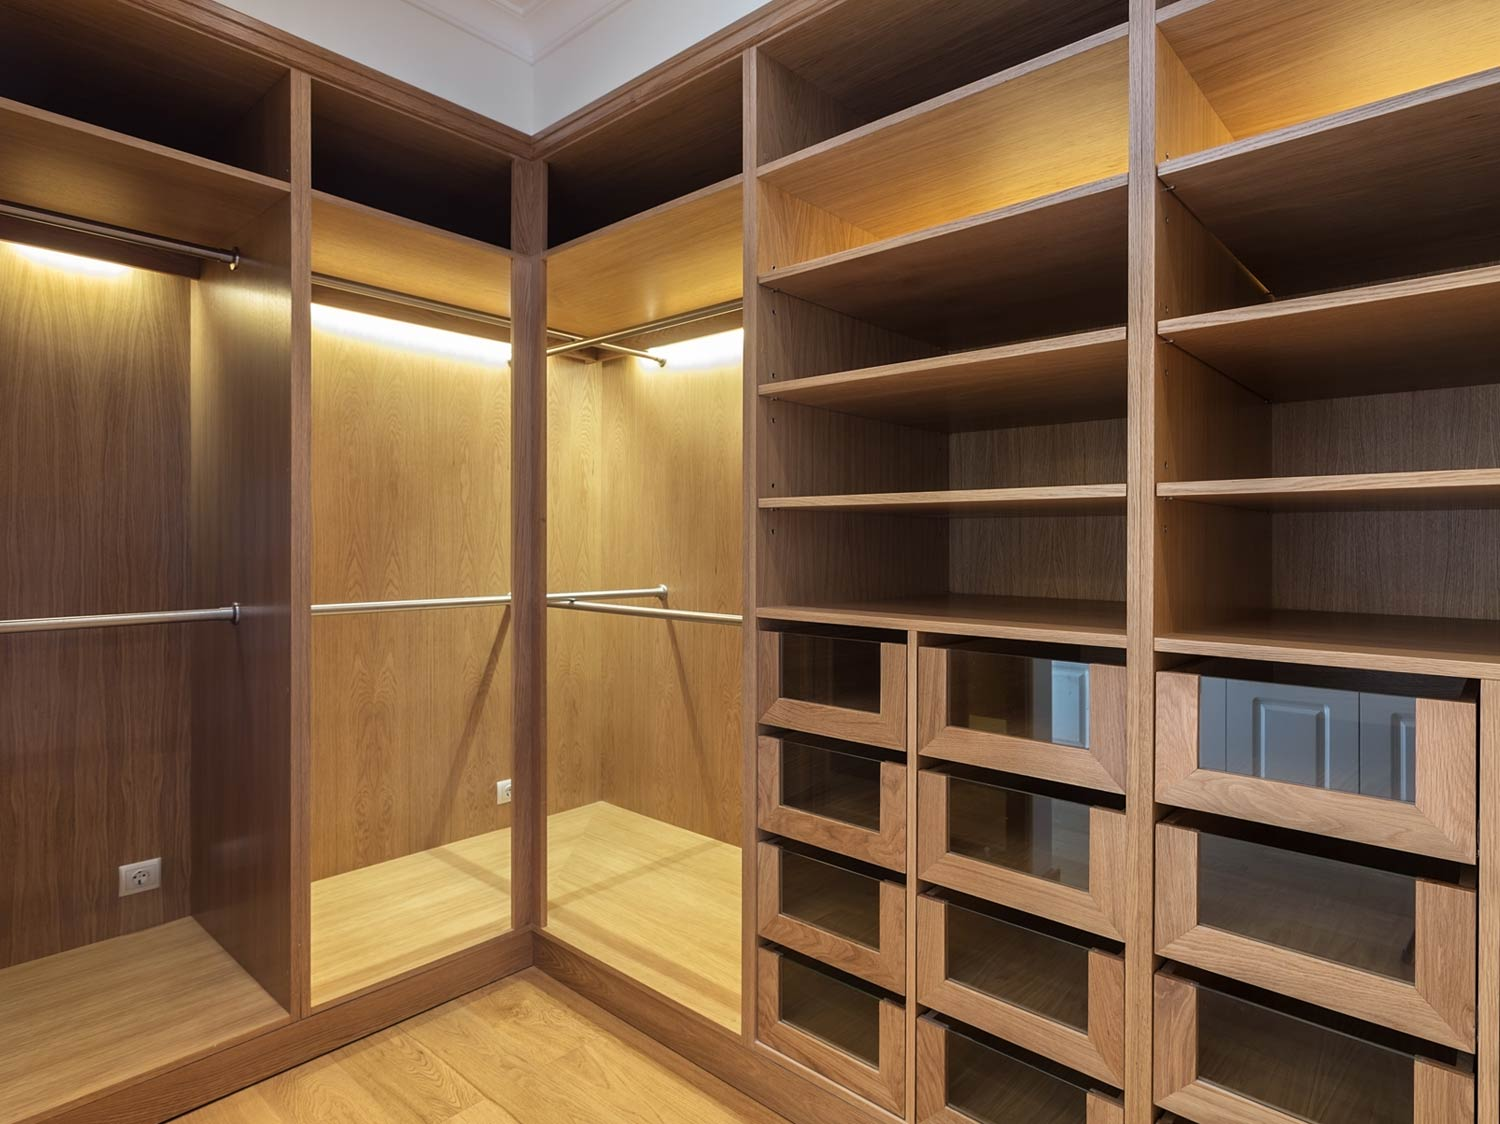 Oak style walk in wardrobe with chrome hanging poles, adjustable shelving and glass fronted draws. This walk in wardrobe was designed for a client in Liverpool and is a great example of the type of work we can do.